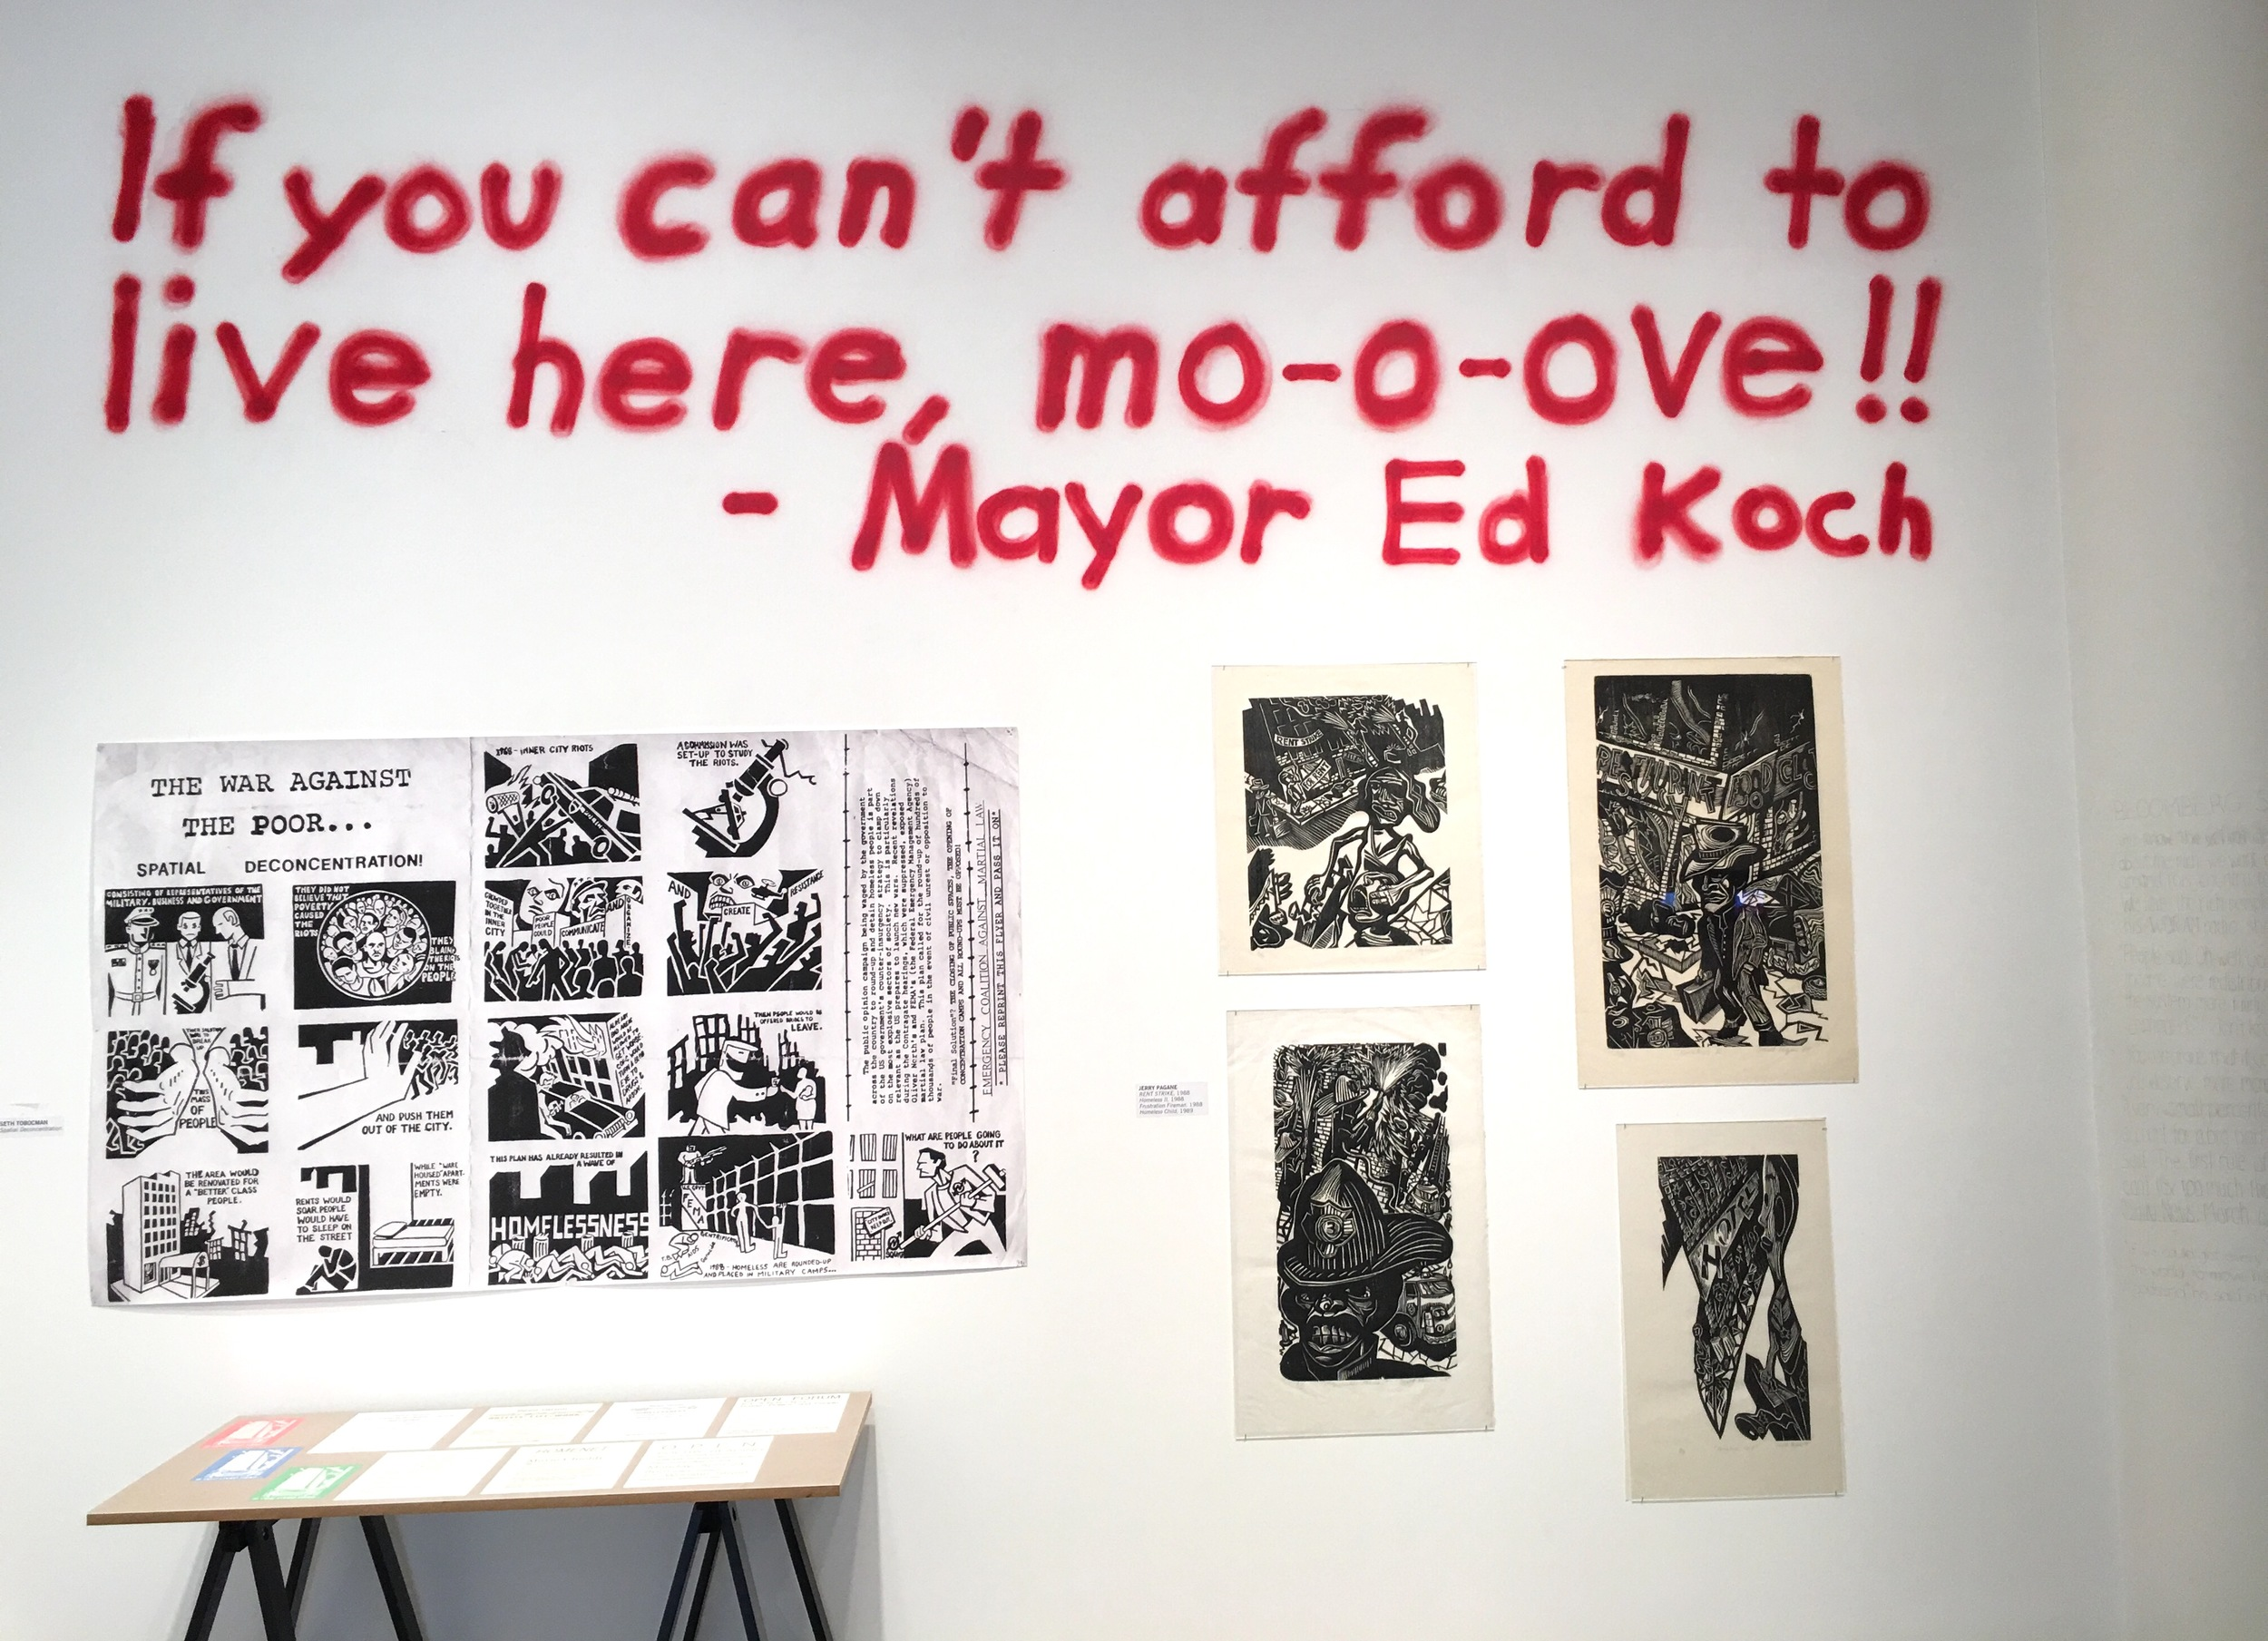 """If you can't afford to Live here, mo-o-ve!!"" - Mayor Ed Koch"